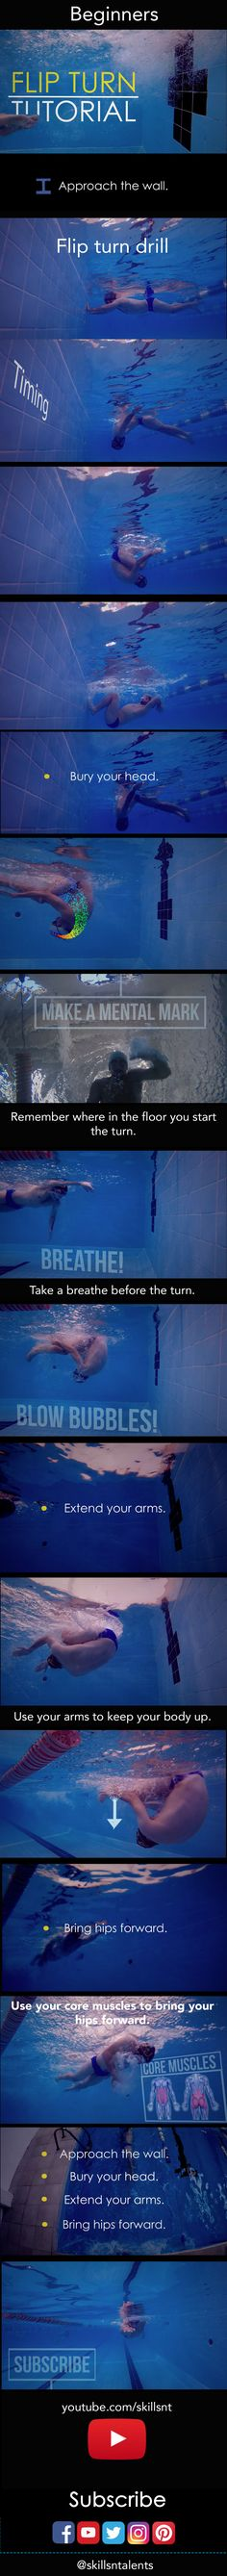 Flip turn tutorial for beginners. How to swim freestyle. Learn more at youtube.com/skillsnt